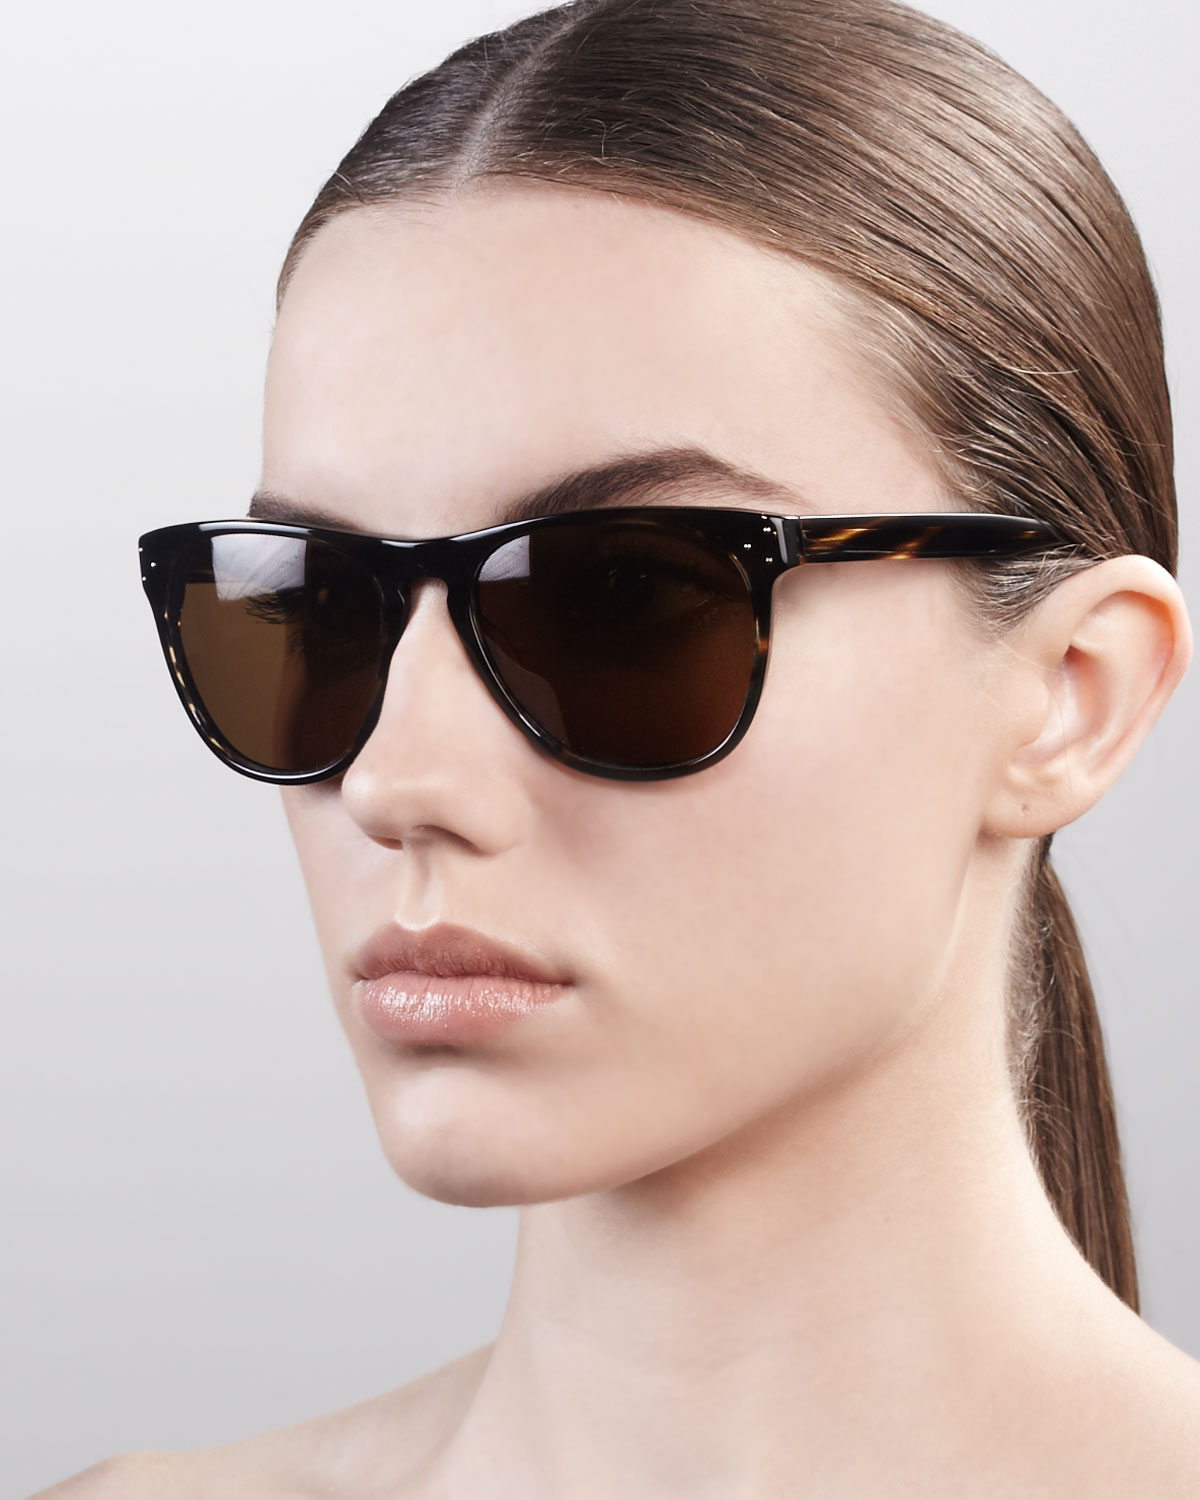 28a351407d5 Lyst - Oliver Peoples Daddy B Sunglasses in Brown